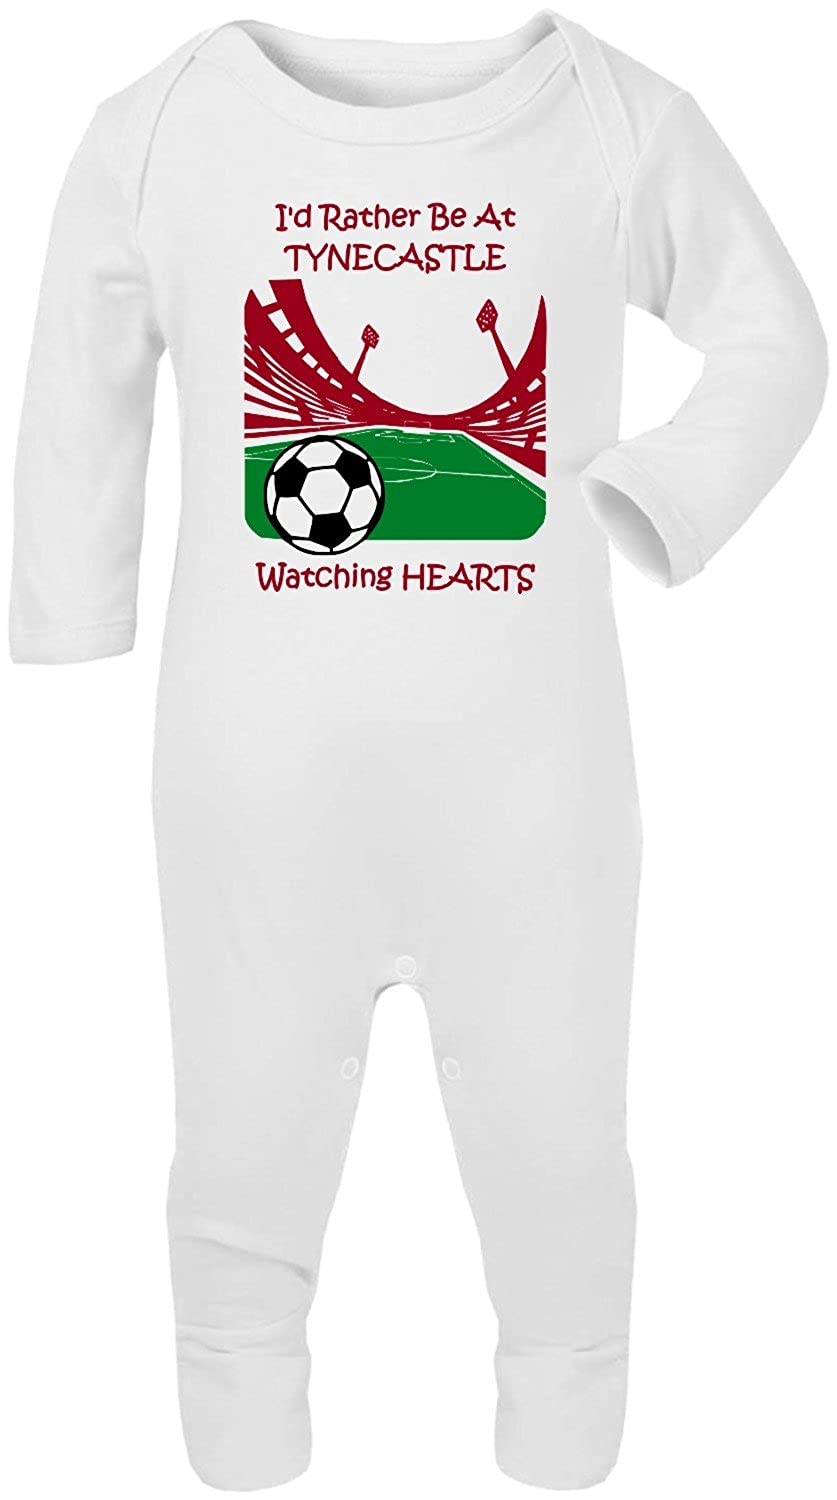 Hat-Trick Designs Hearts Football Baby Romper Sleep Suit-White-Id Rather Be-Unisex Gift